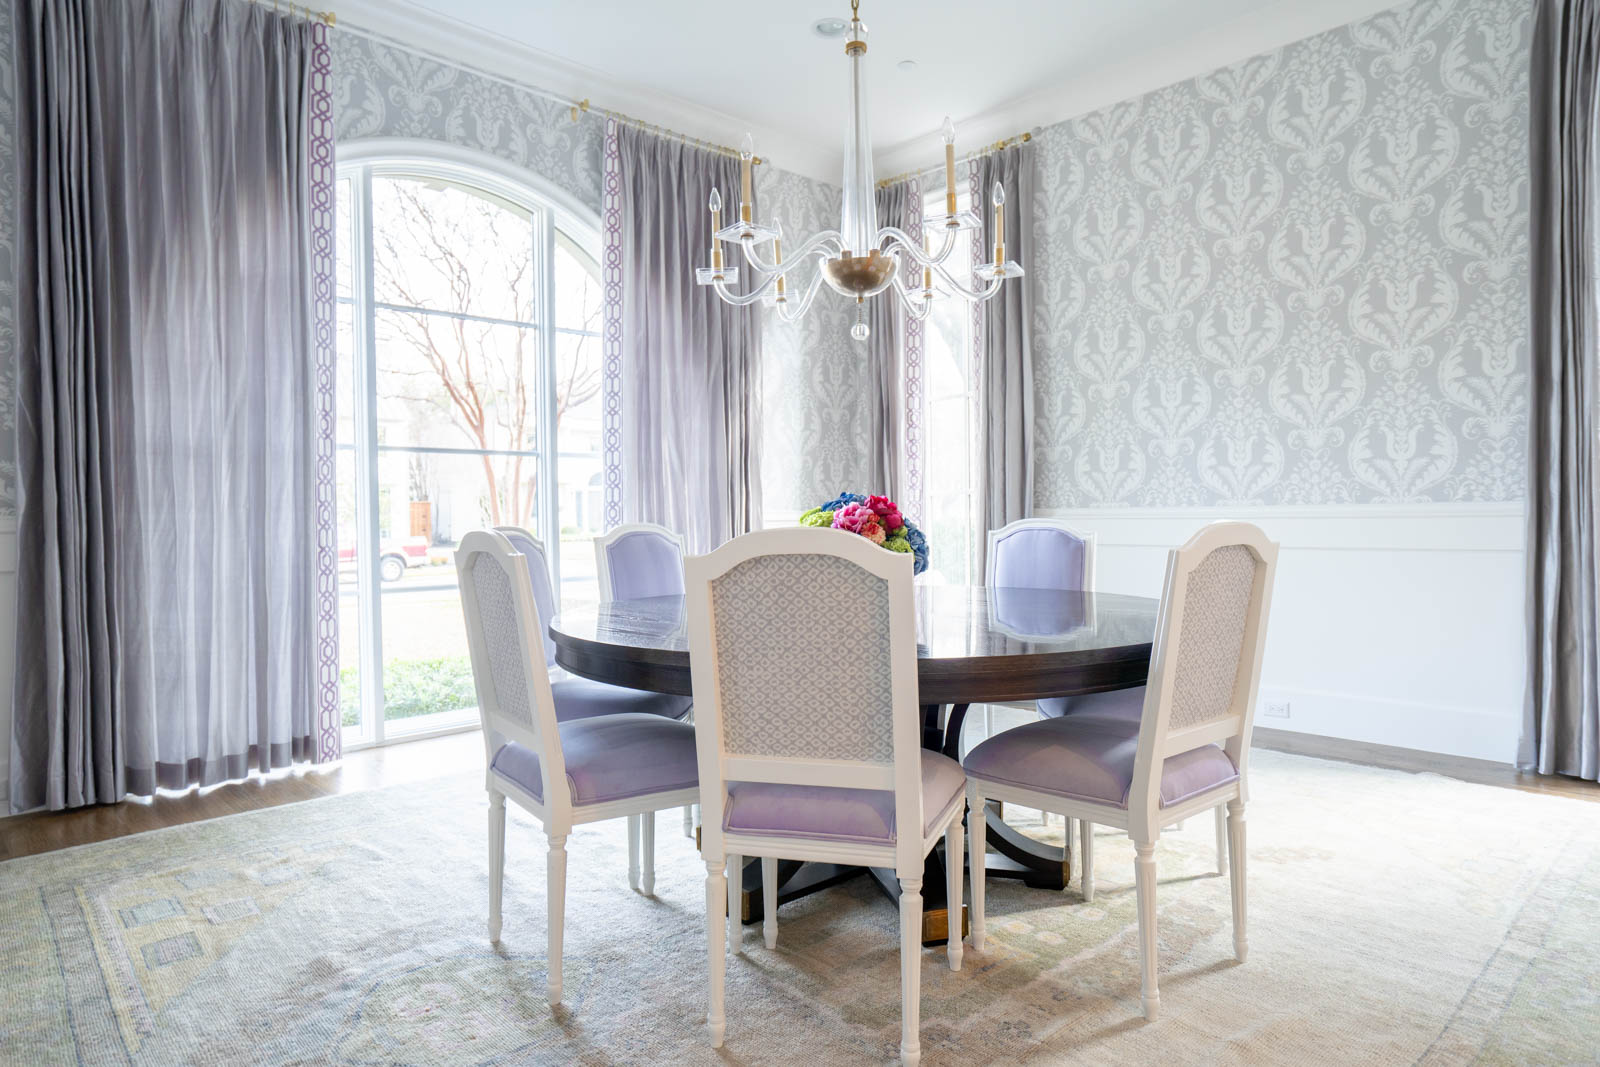 Floor Covering Dining